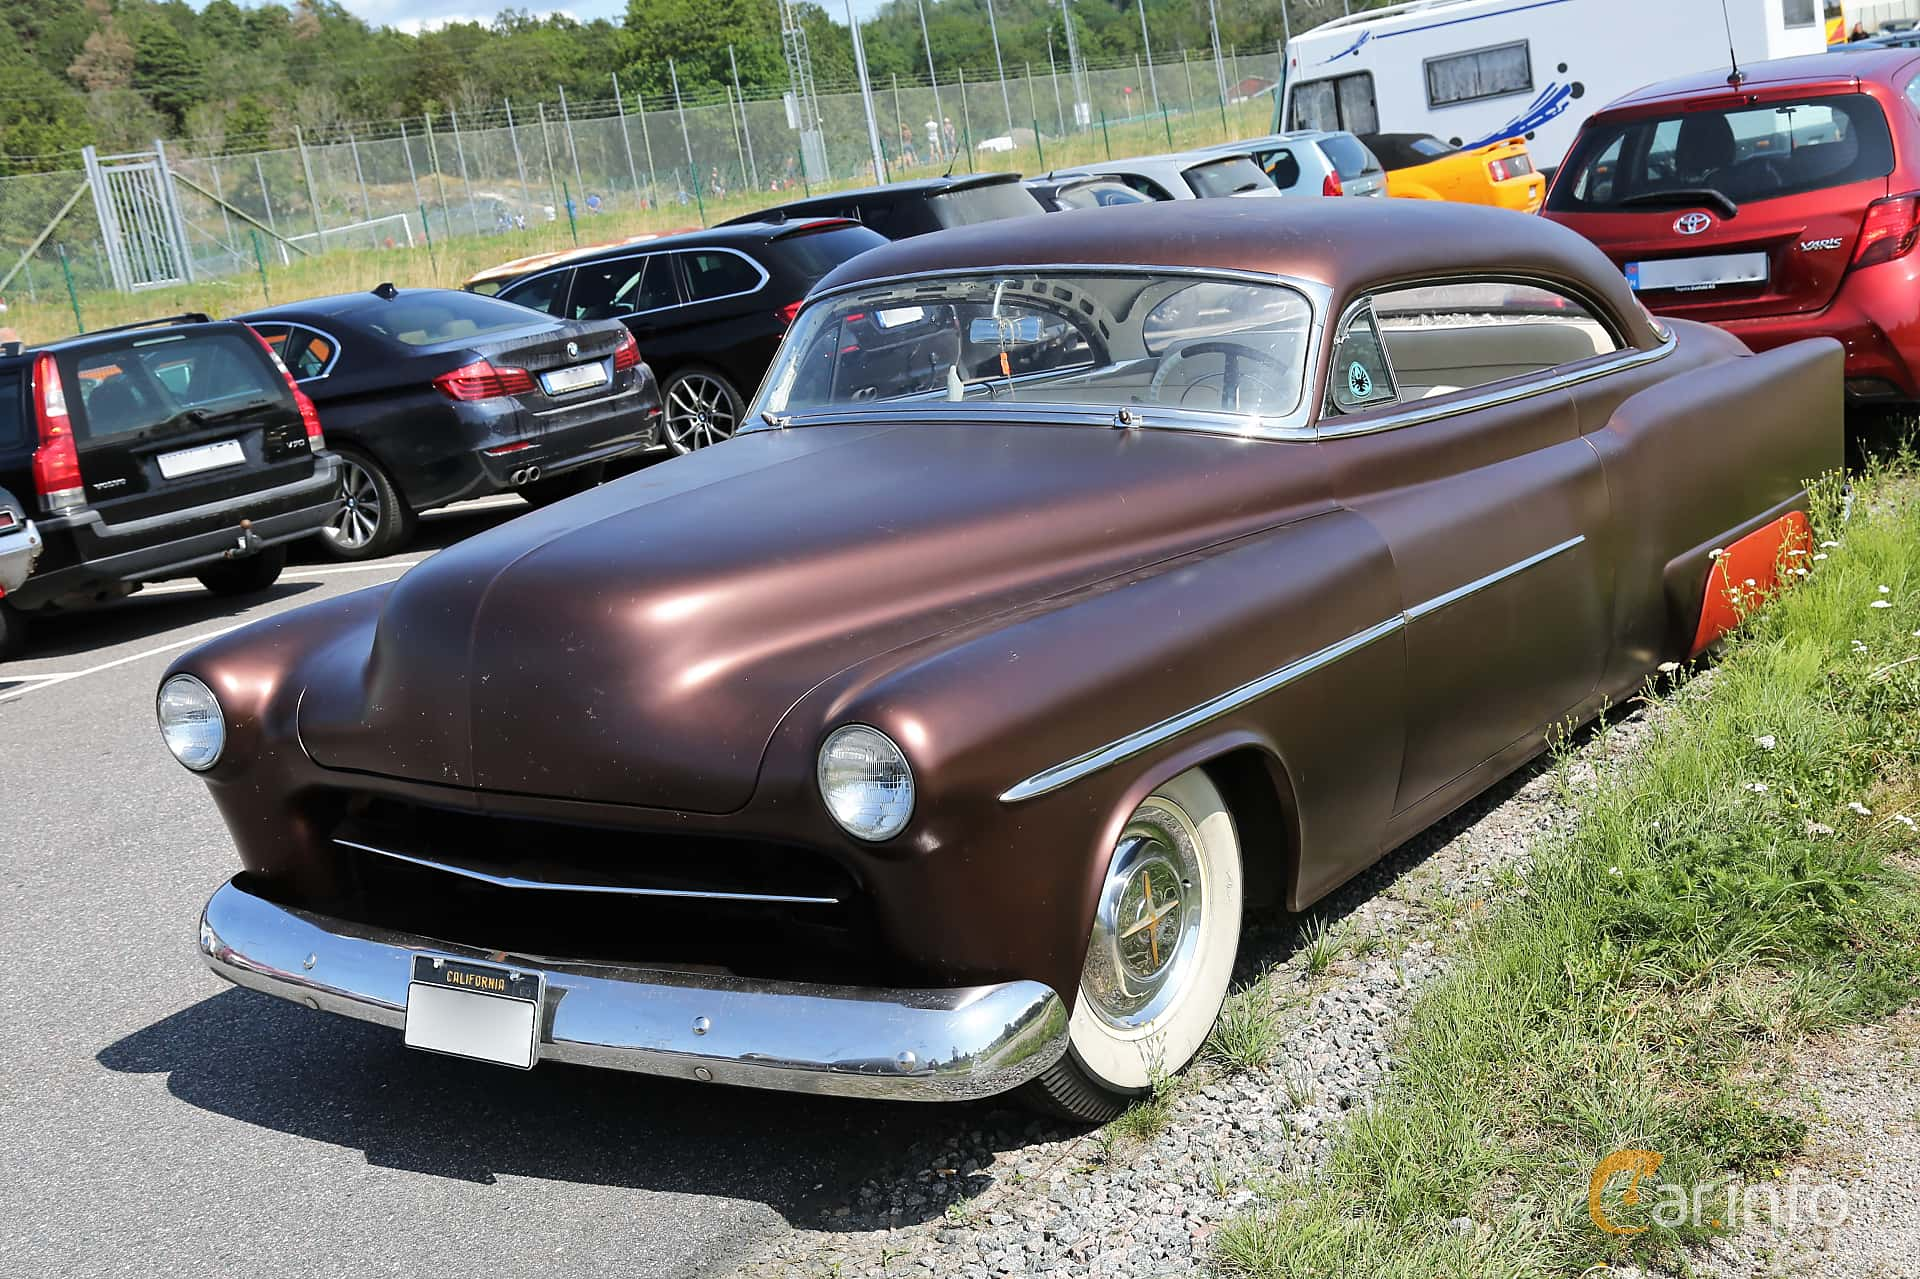 Oldsmobile Super 88 Holiday Coupé 5.0 V8 Hydra-Matic, 167hp, 1953 at A-bombers - Old Style Weekend Backamo 2019